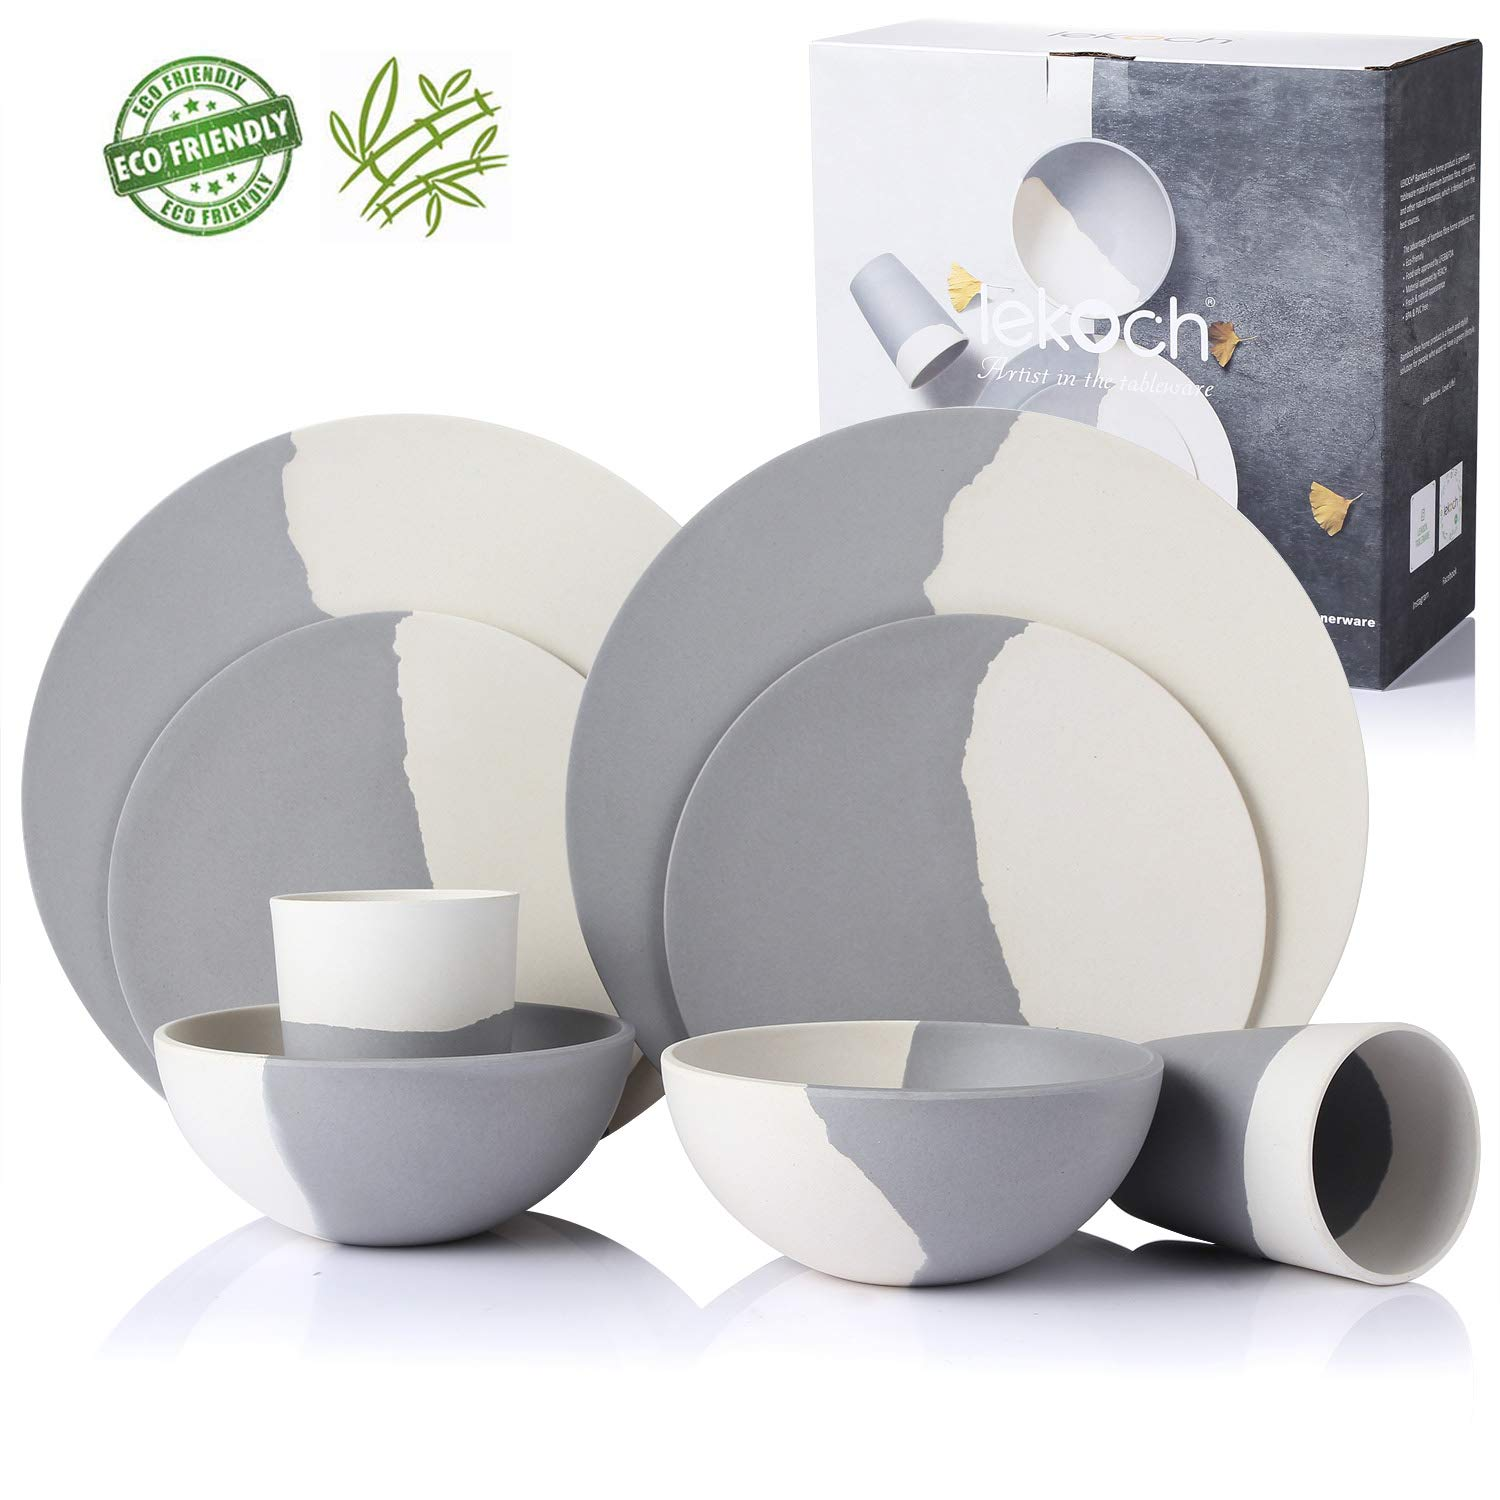 Lekoch 8-Piece Bamboo Dinnerware Set,Eco-friendly Tableware Set for 2 Guests,Bamboo Fiber Plate,Salad Plate,Soup Bowl,Cup for Mother's Day Gift(White & Gray)